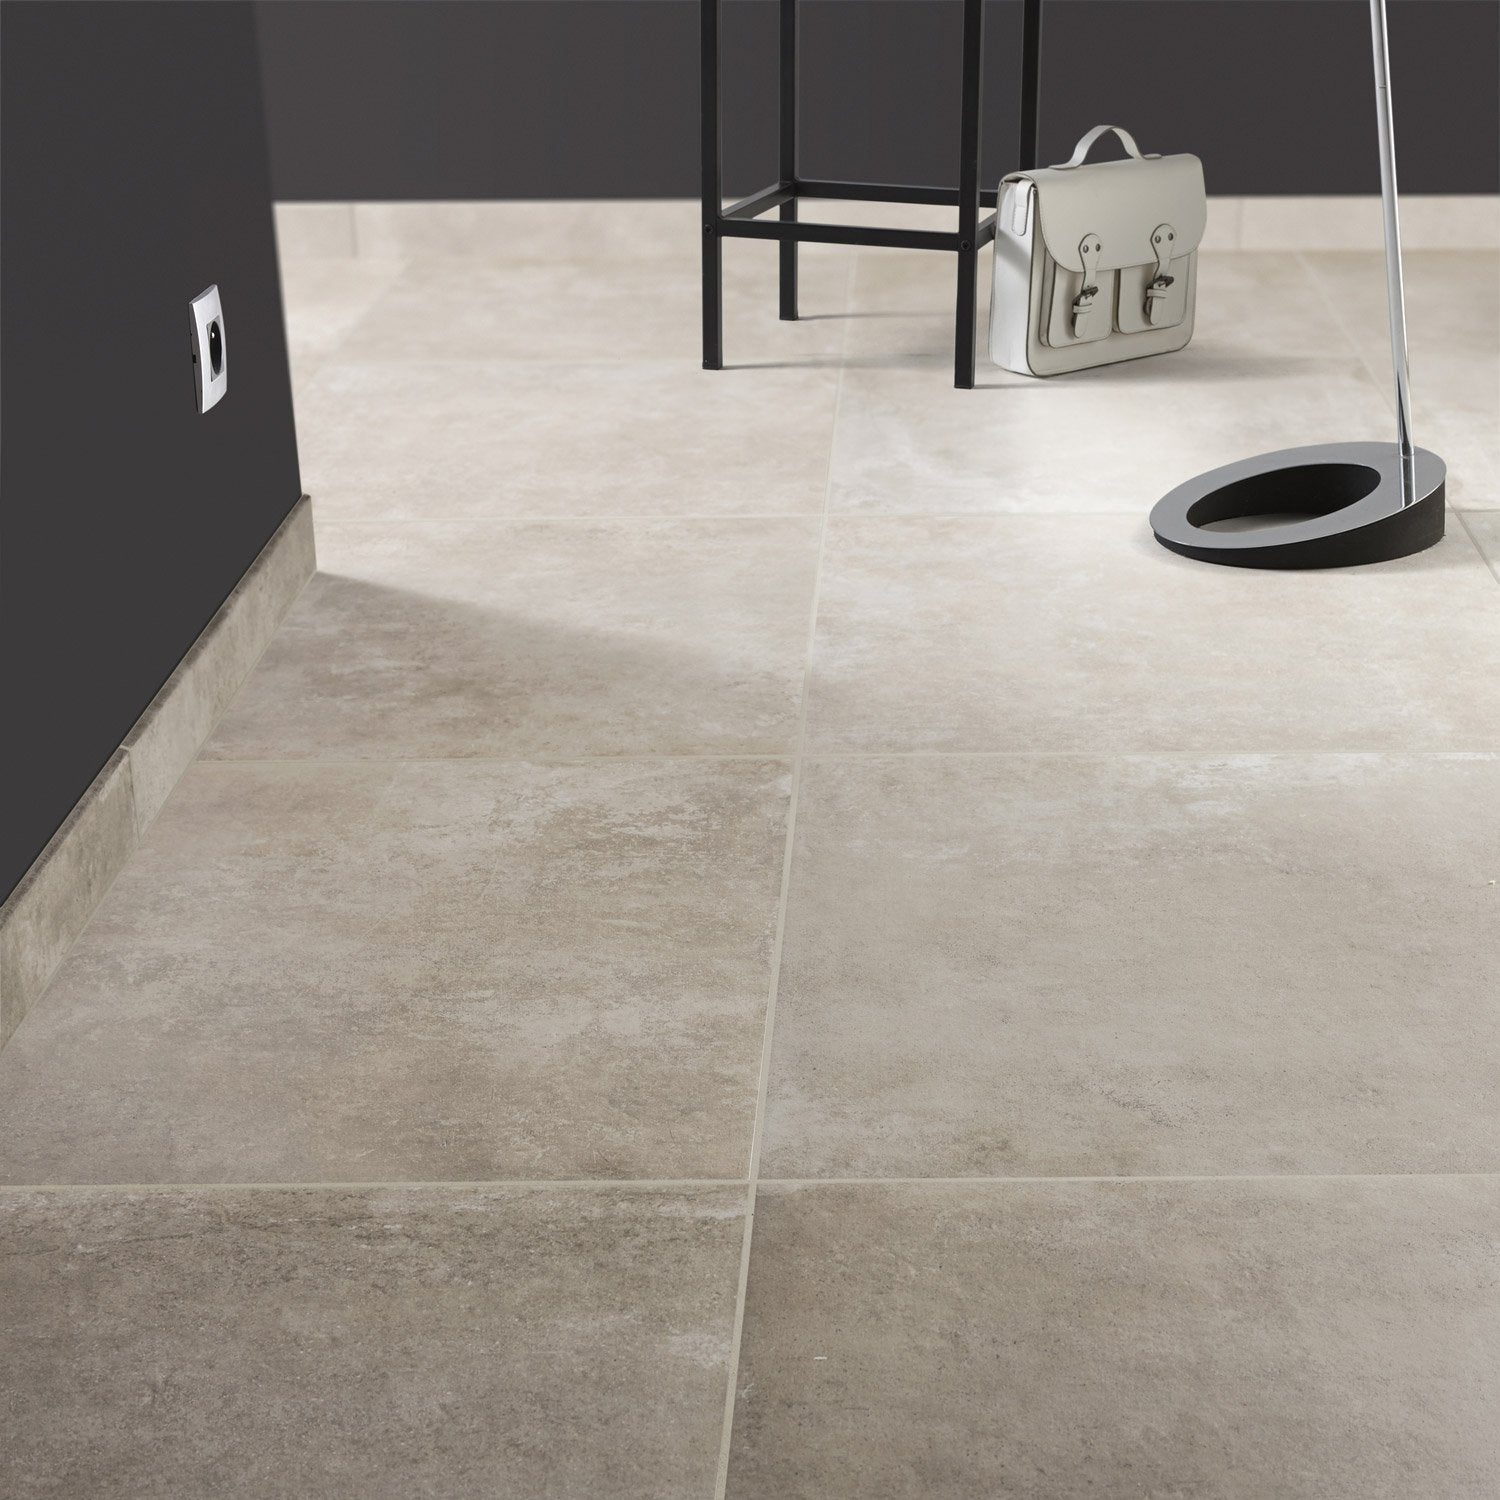 Carrelage design carrelage taupe moderne design pour for Carrelage 60 60